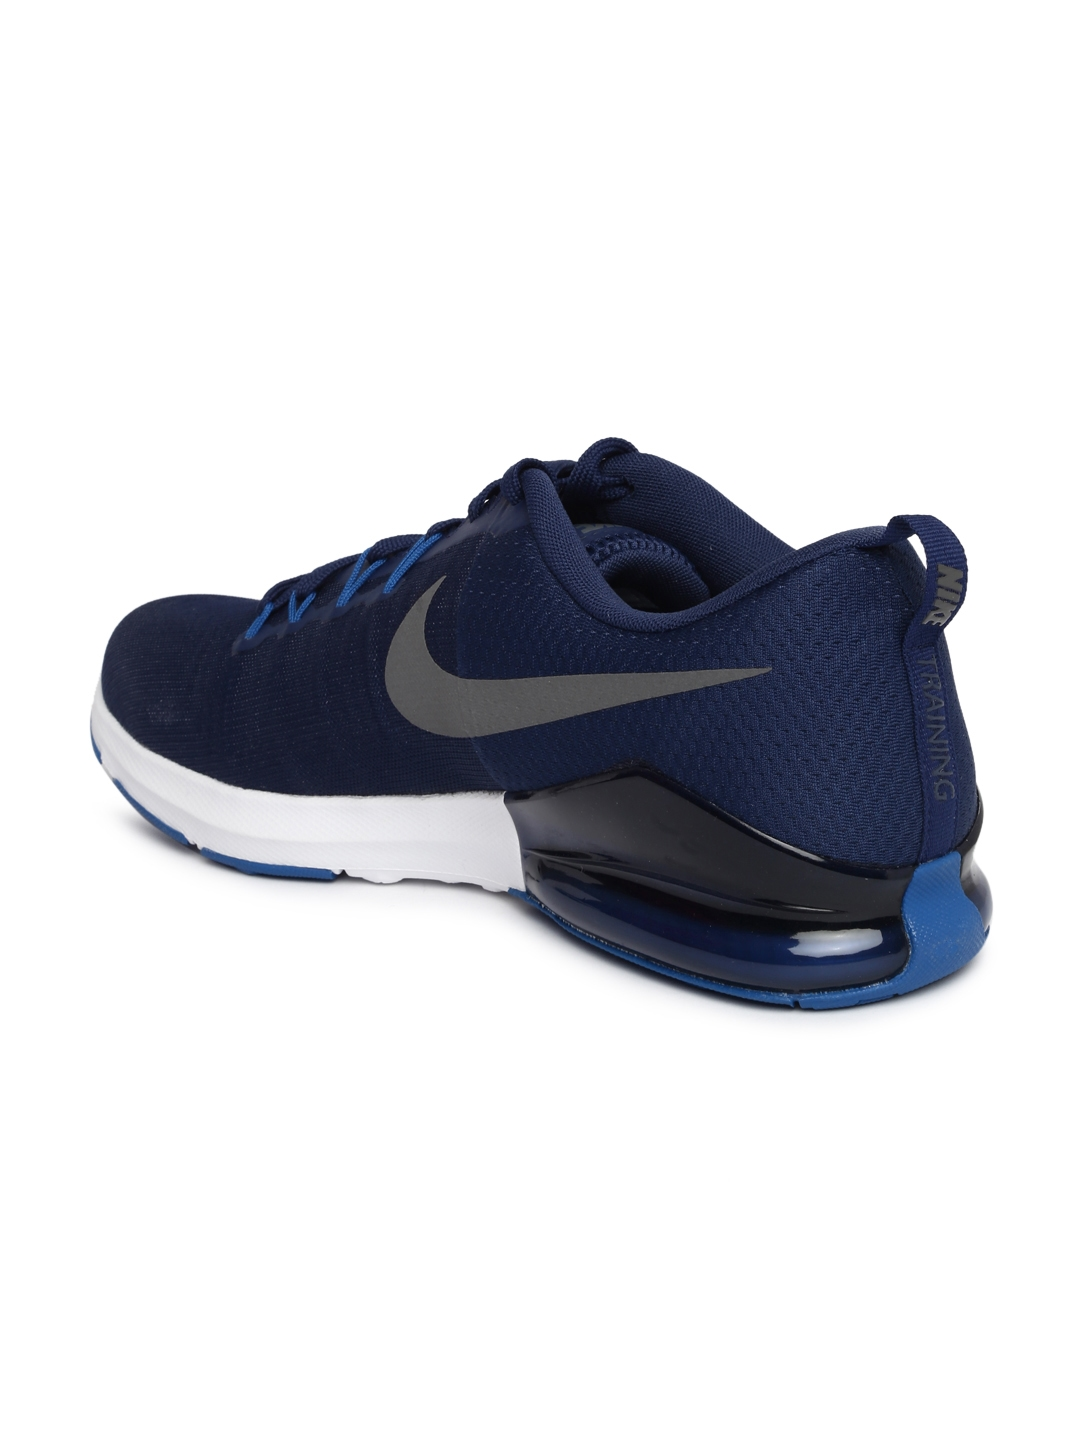 f3006d8b1a11 Buy Nike Men Navy Blue ZOOM TRAIN ACTION Training Shoes - Sports ...